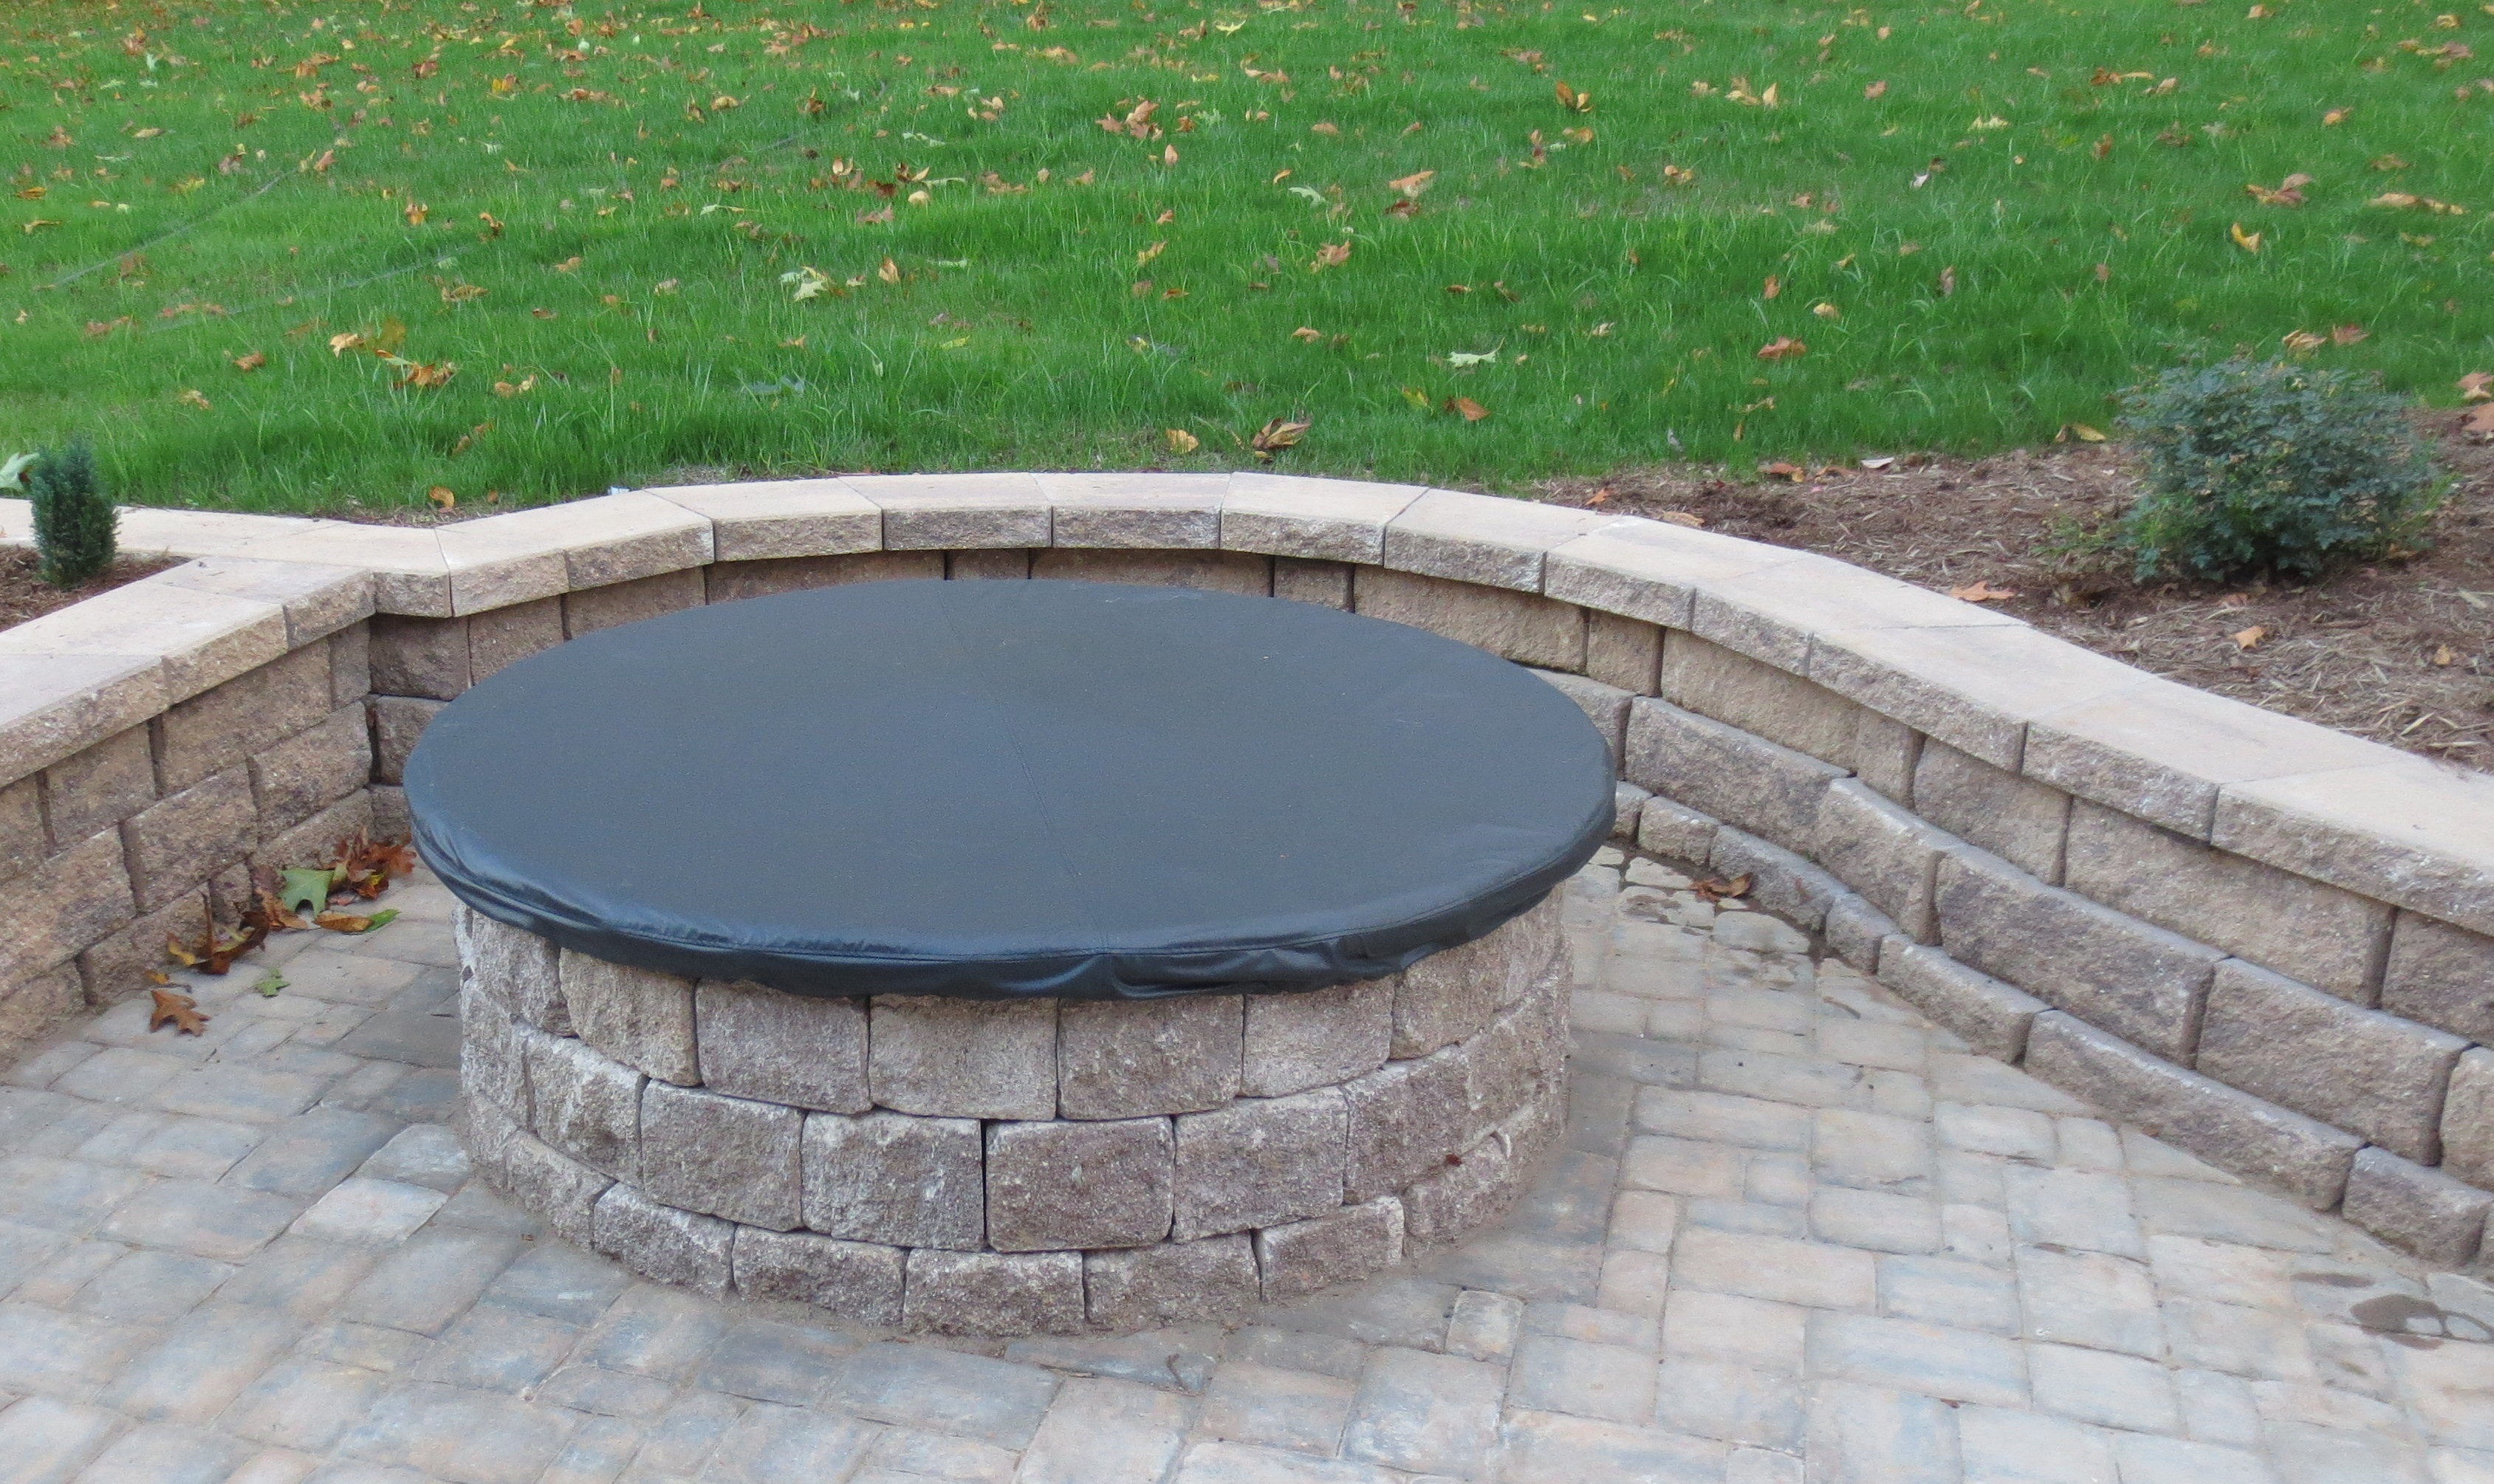 Fire Pit Cover Equip Home Fitness intended for sizing 3377 X 2010